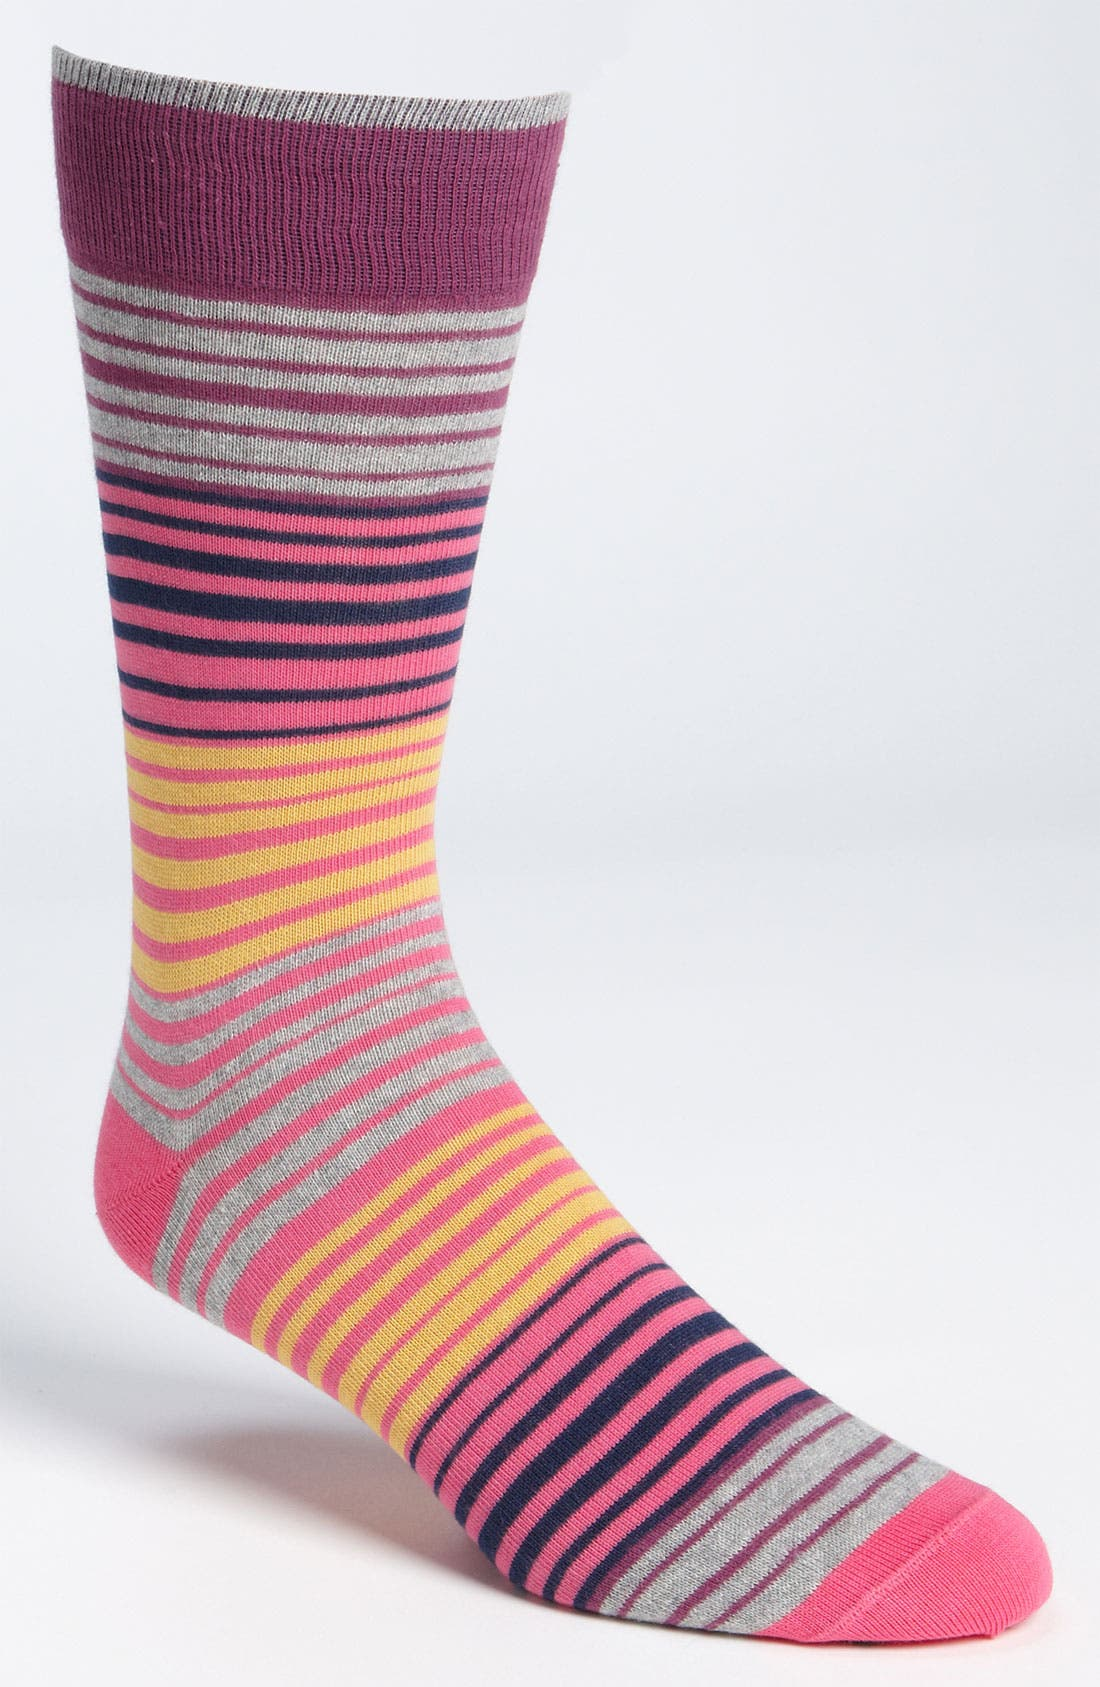 Main Image - Lorenzo Uomo Multi Stripe Socks